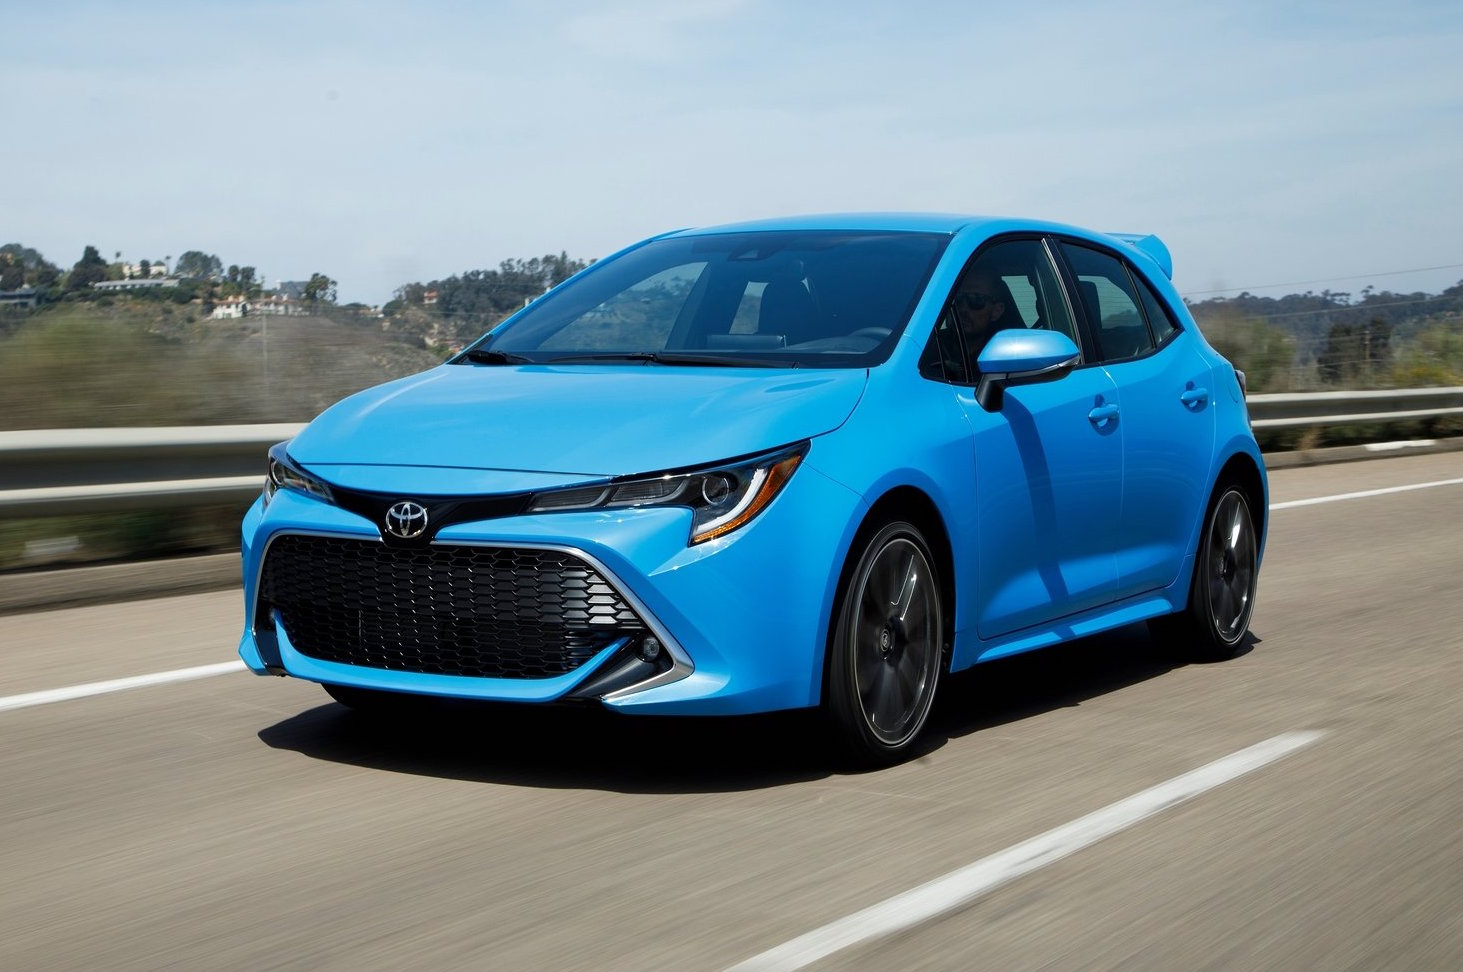 2019 toyota corolla gets adaptive cruise control aeb as. Black Bedroom Furniture Sets. Home Design Ideas